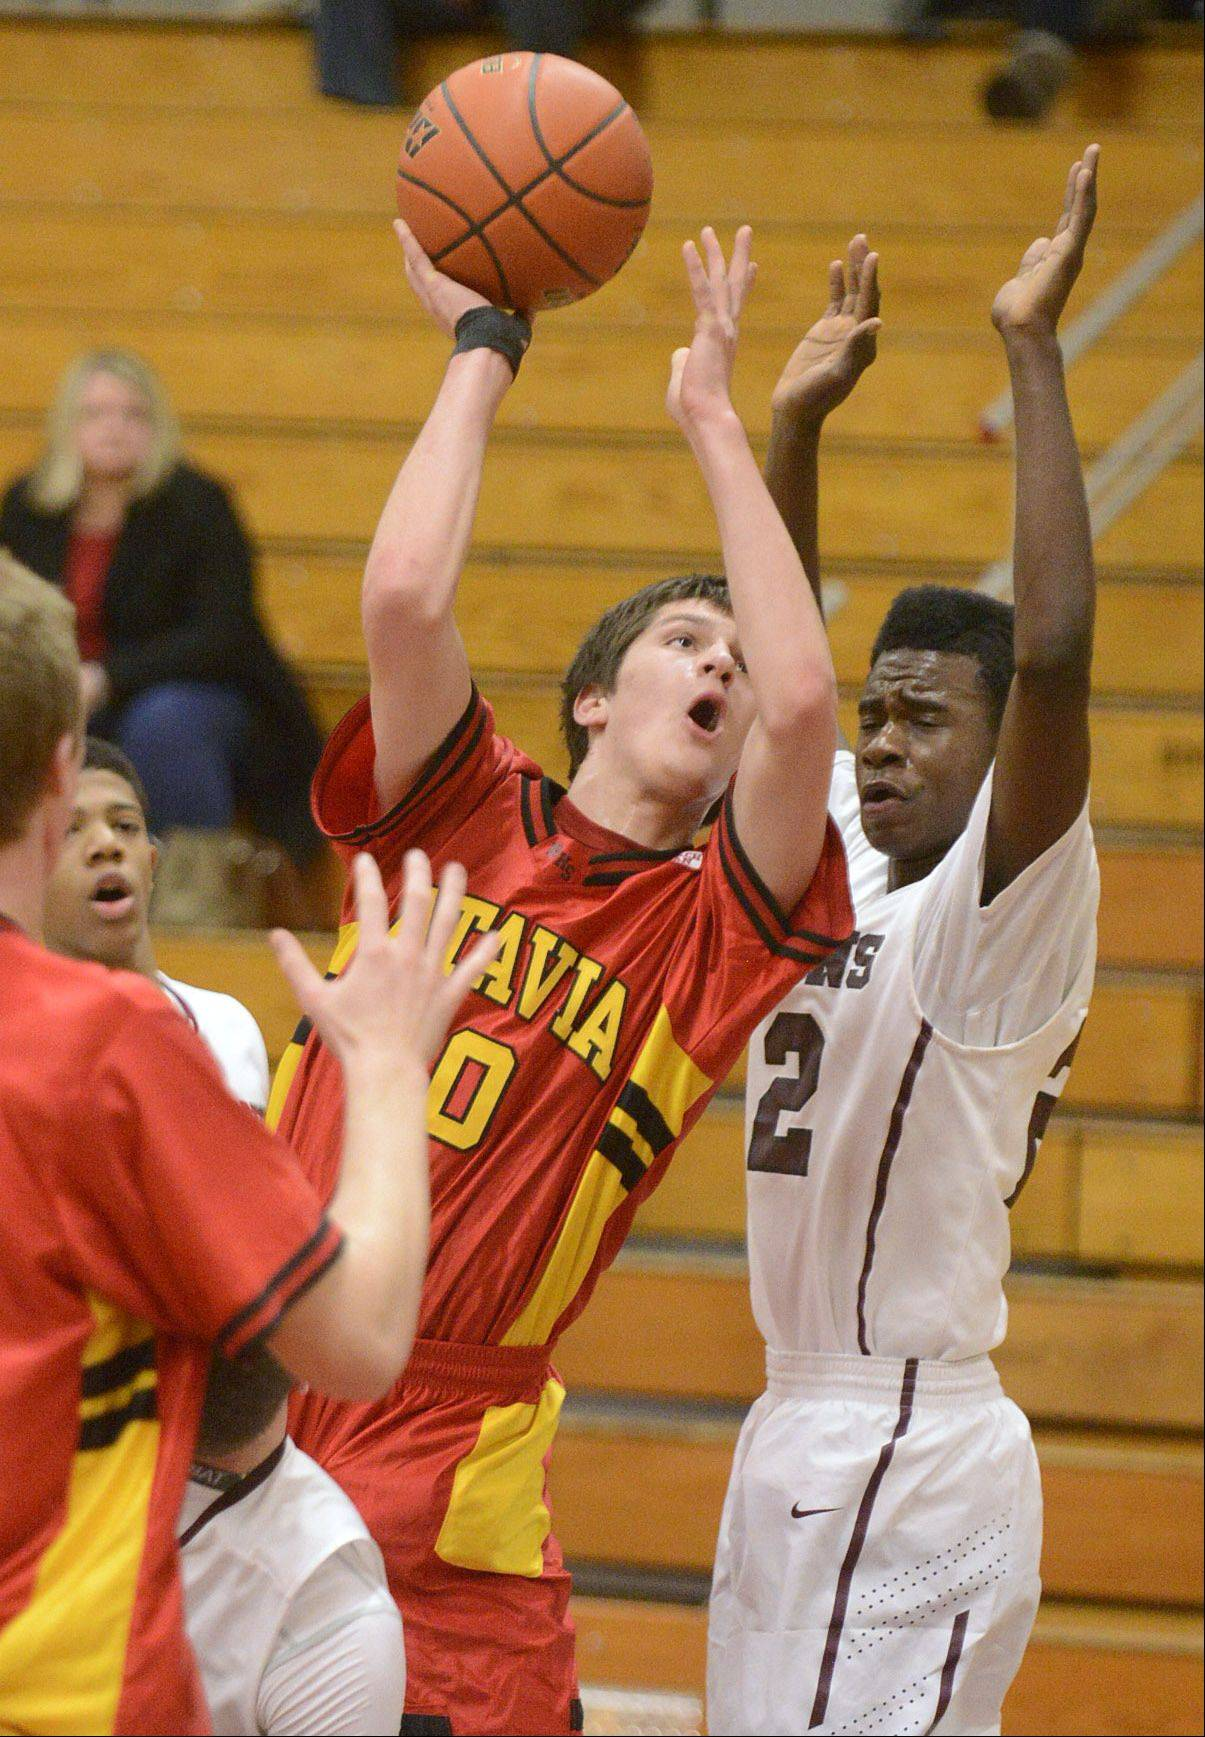 Batavia's Danny Pieczynski shoots past Elgin's Desmond Sanders in the first quarter on Saturday, January 18.